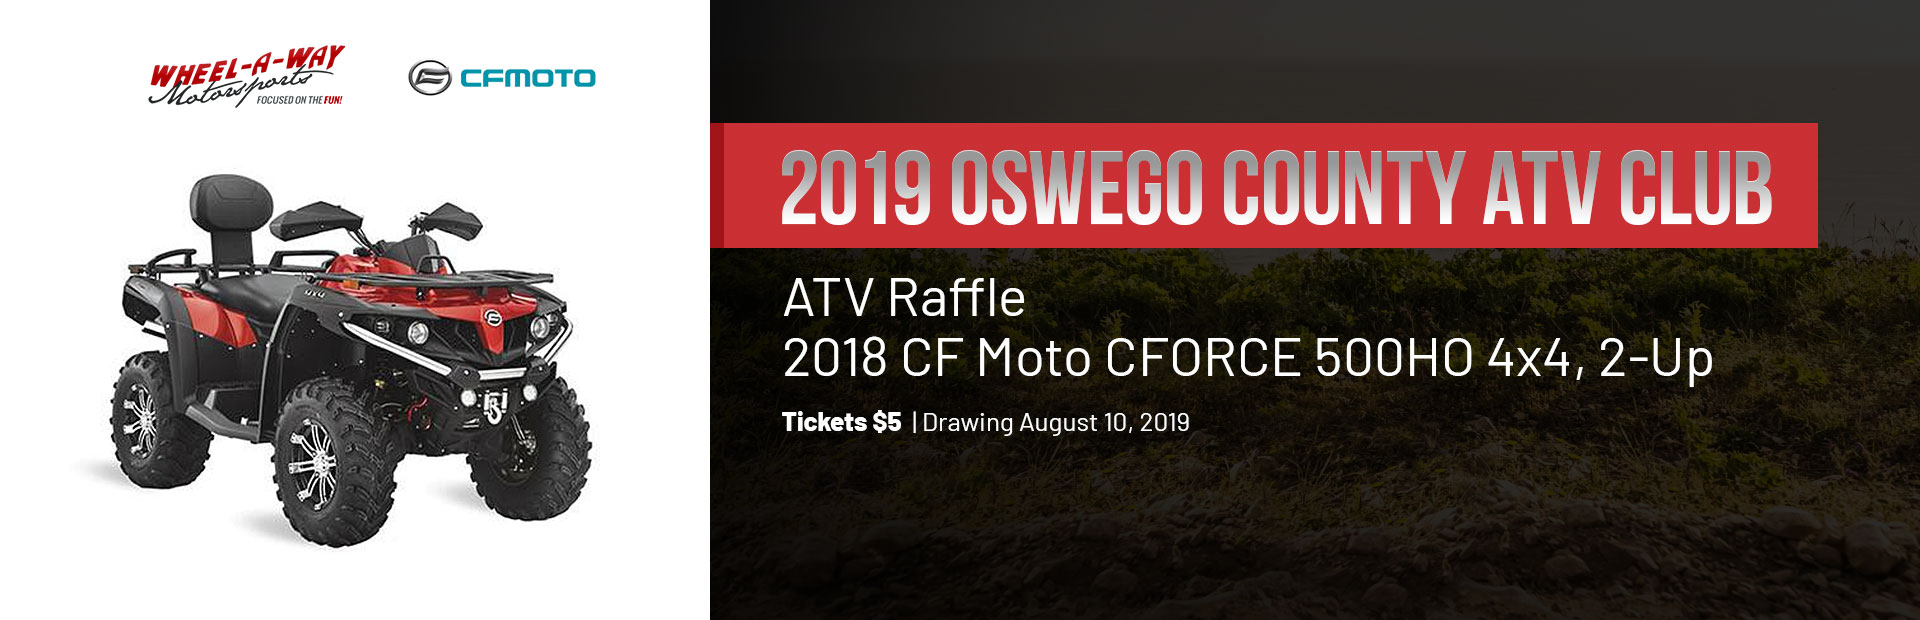 Join us on August 10, 2019 to win a CF Moto CFORCE 500HO 4x4, 2-Up! Click here to contact us!